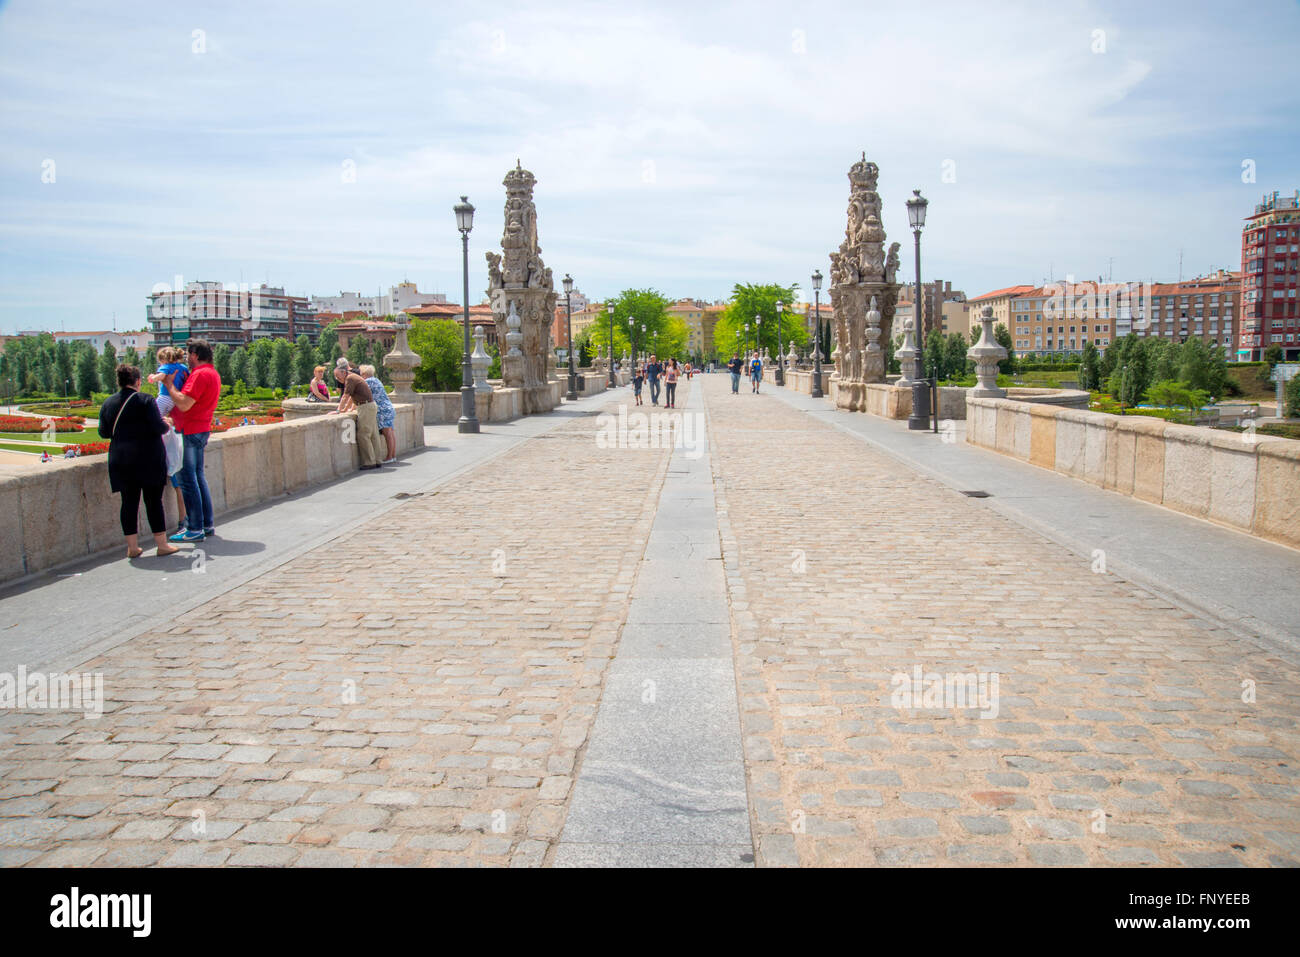 Toledo bridge. Madrid, Spain. - Stock Image